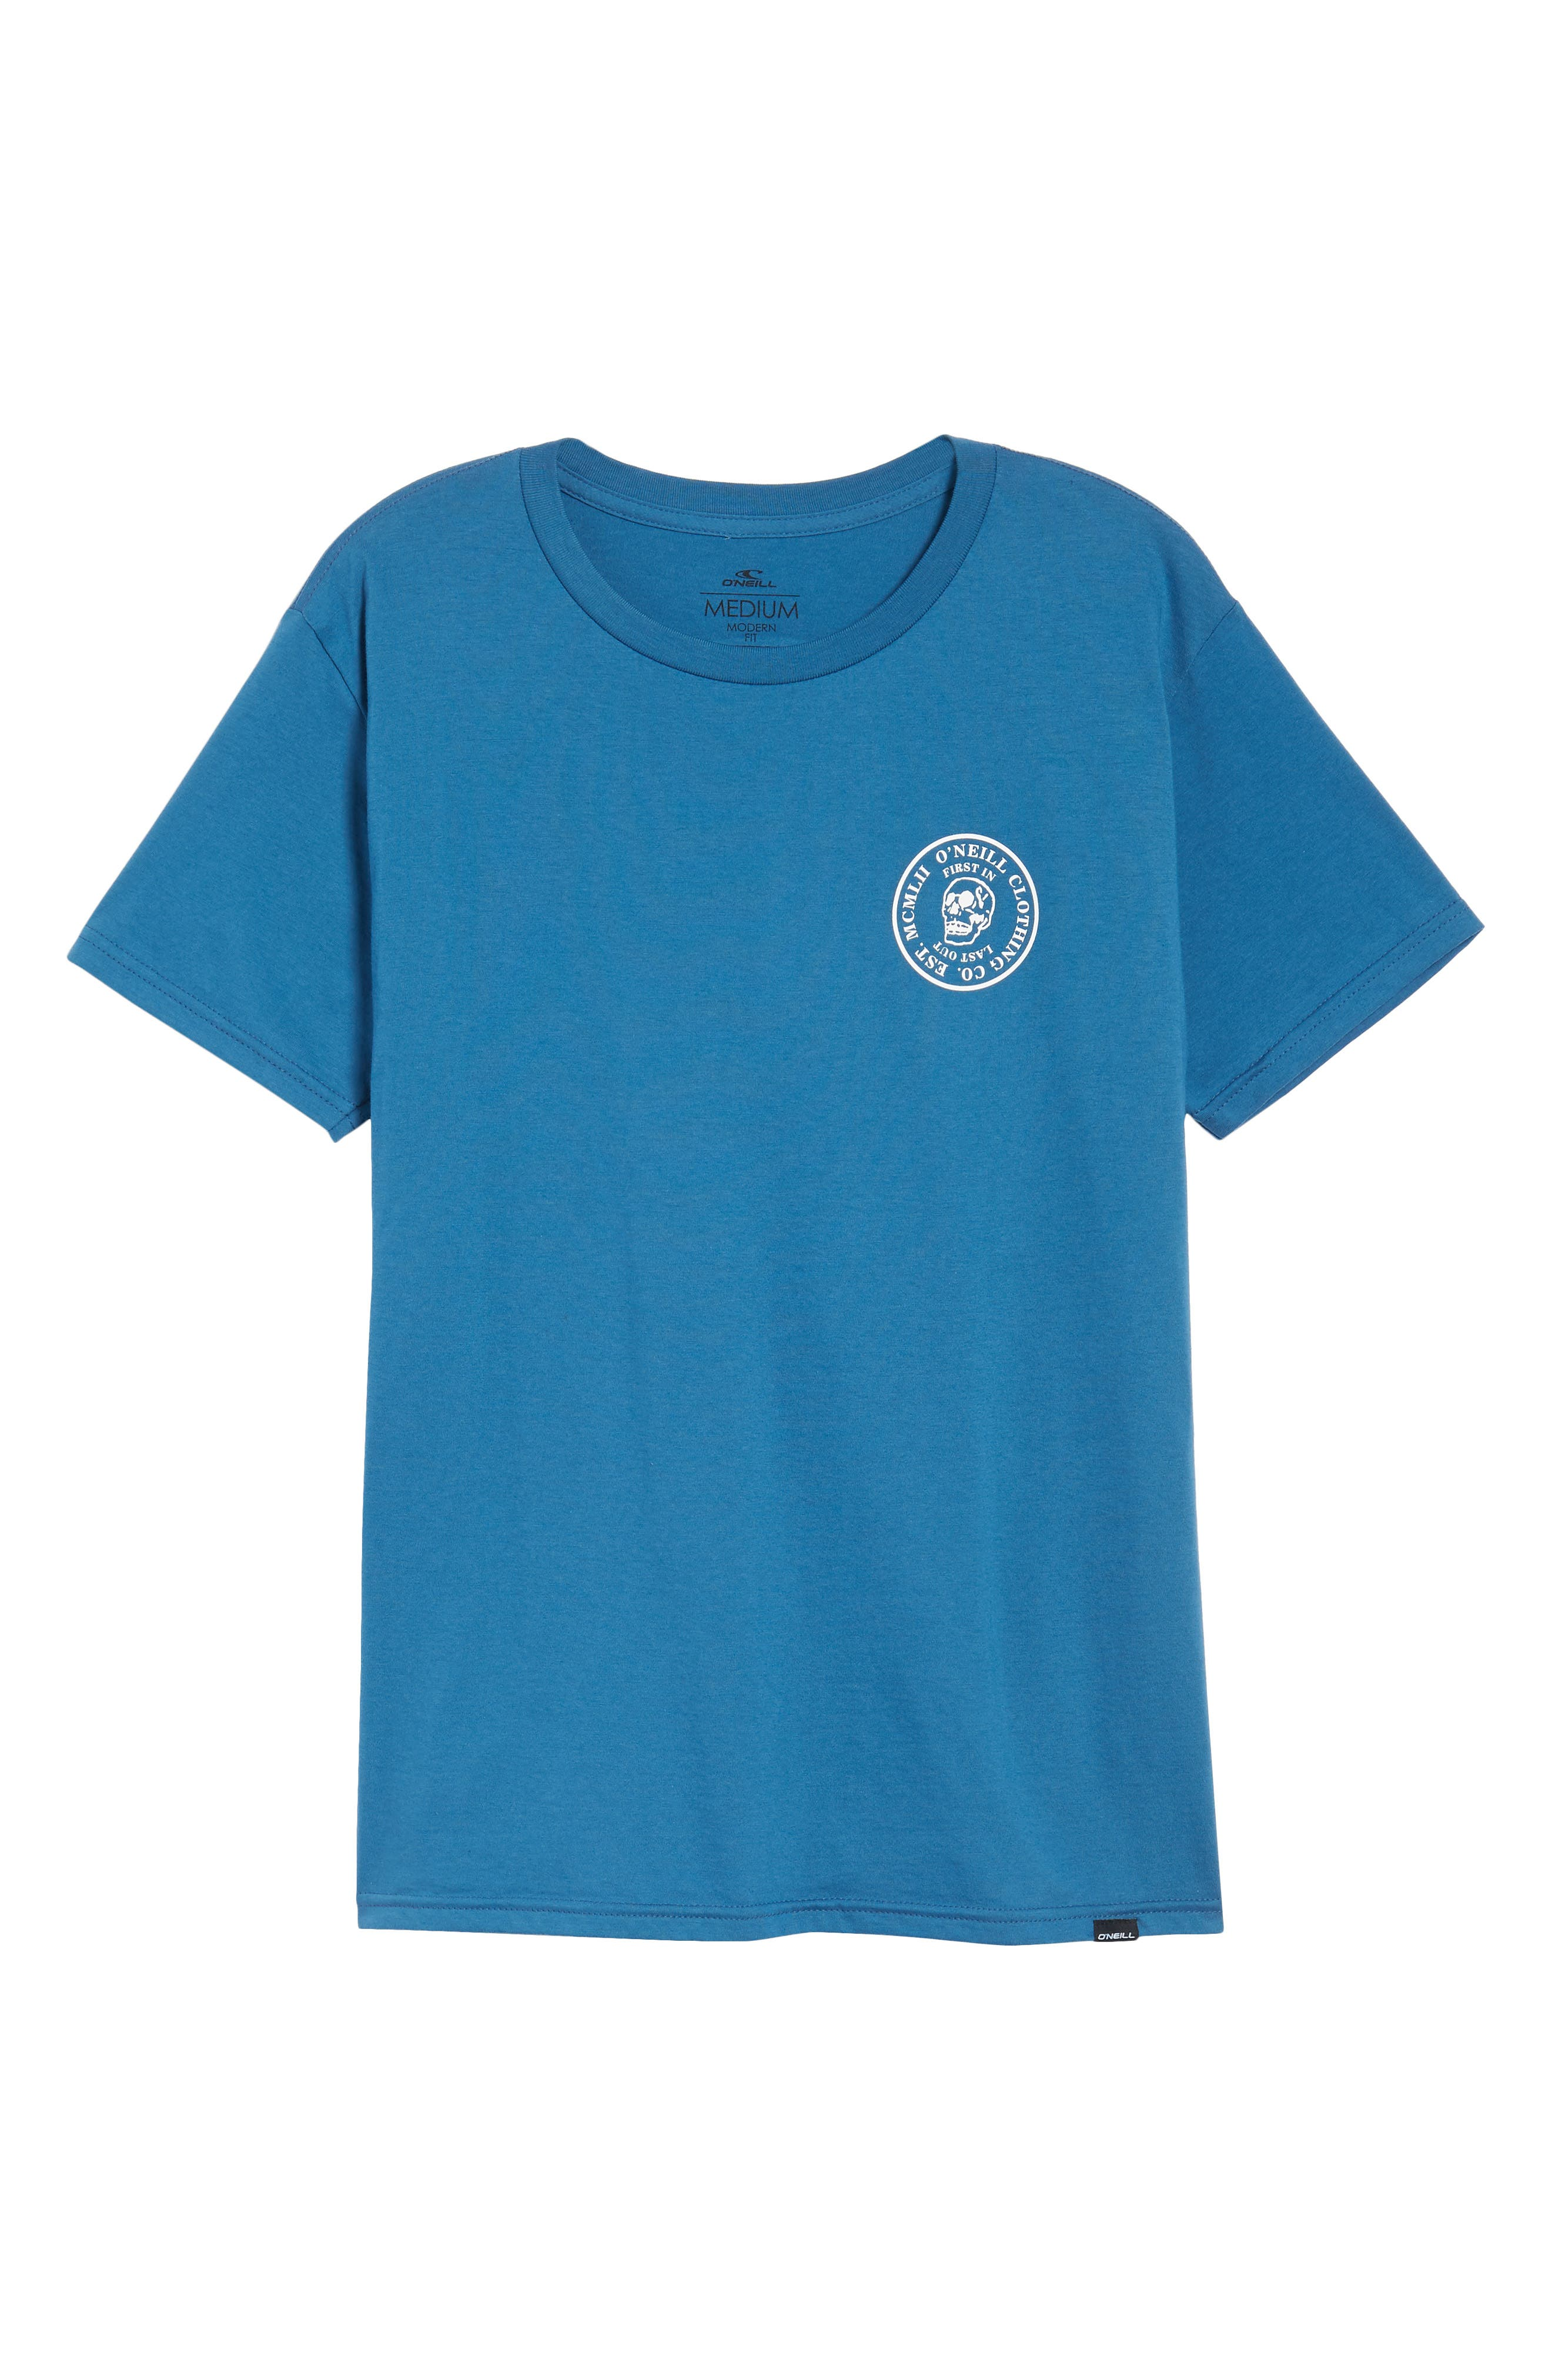 Skully Graphic T-Shirt,                             Alternate thumbnail 6, color,                             Air Force Blue